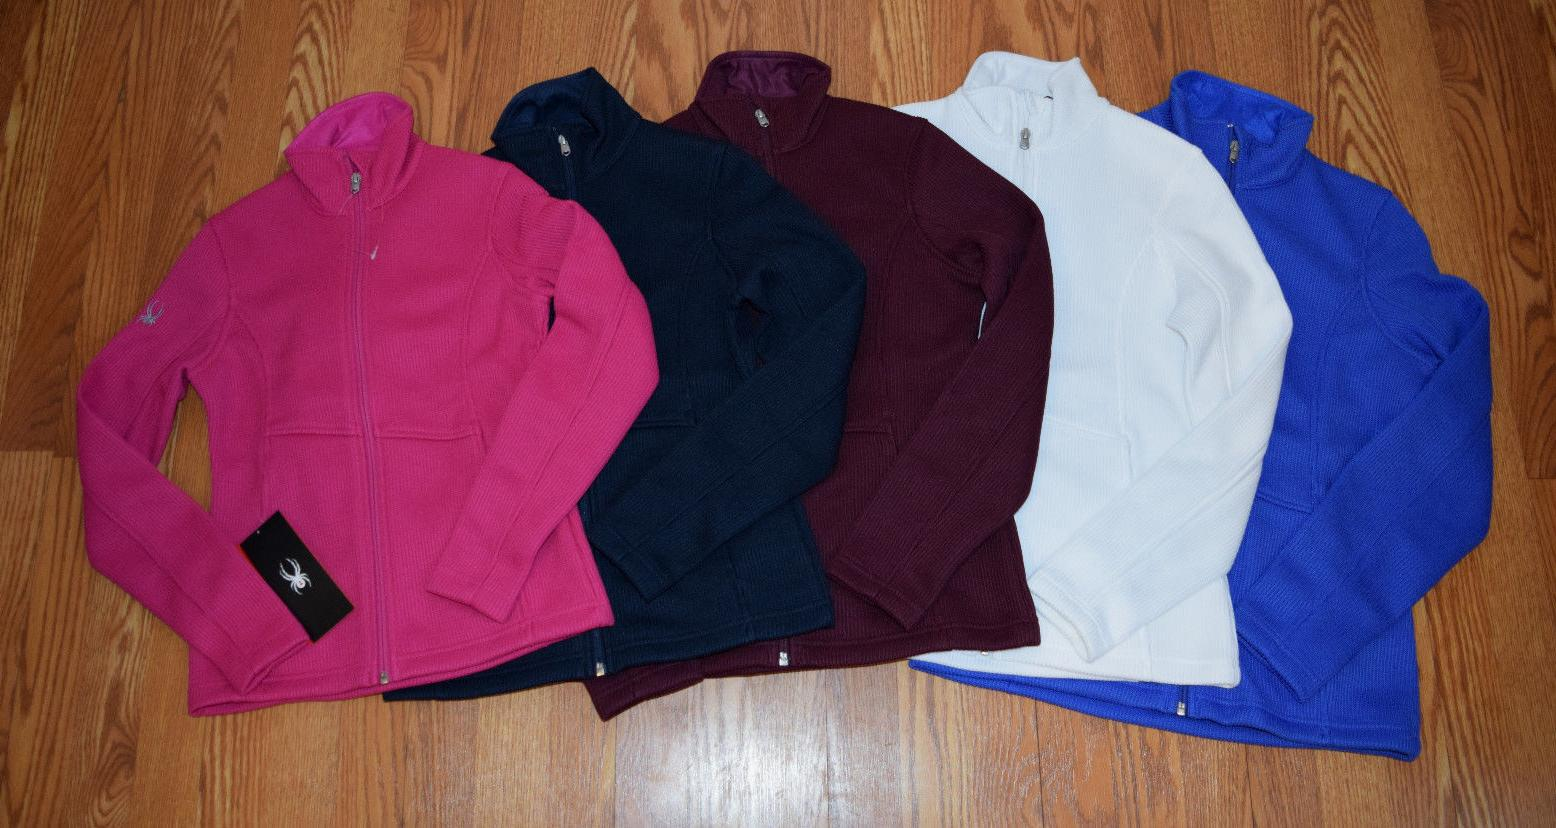 nwt womens endure stryke knit mid weight